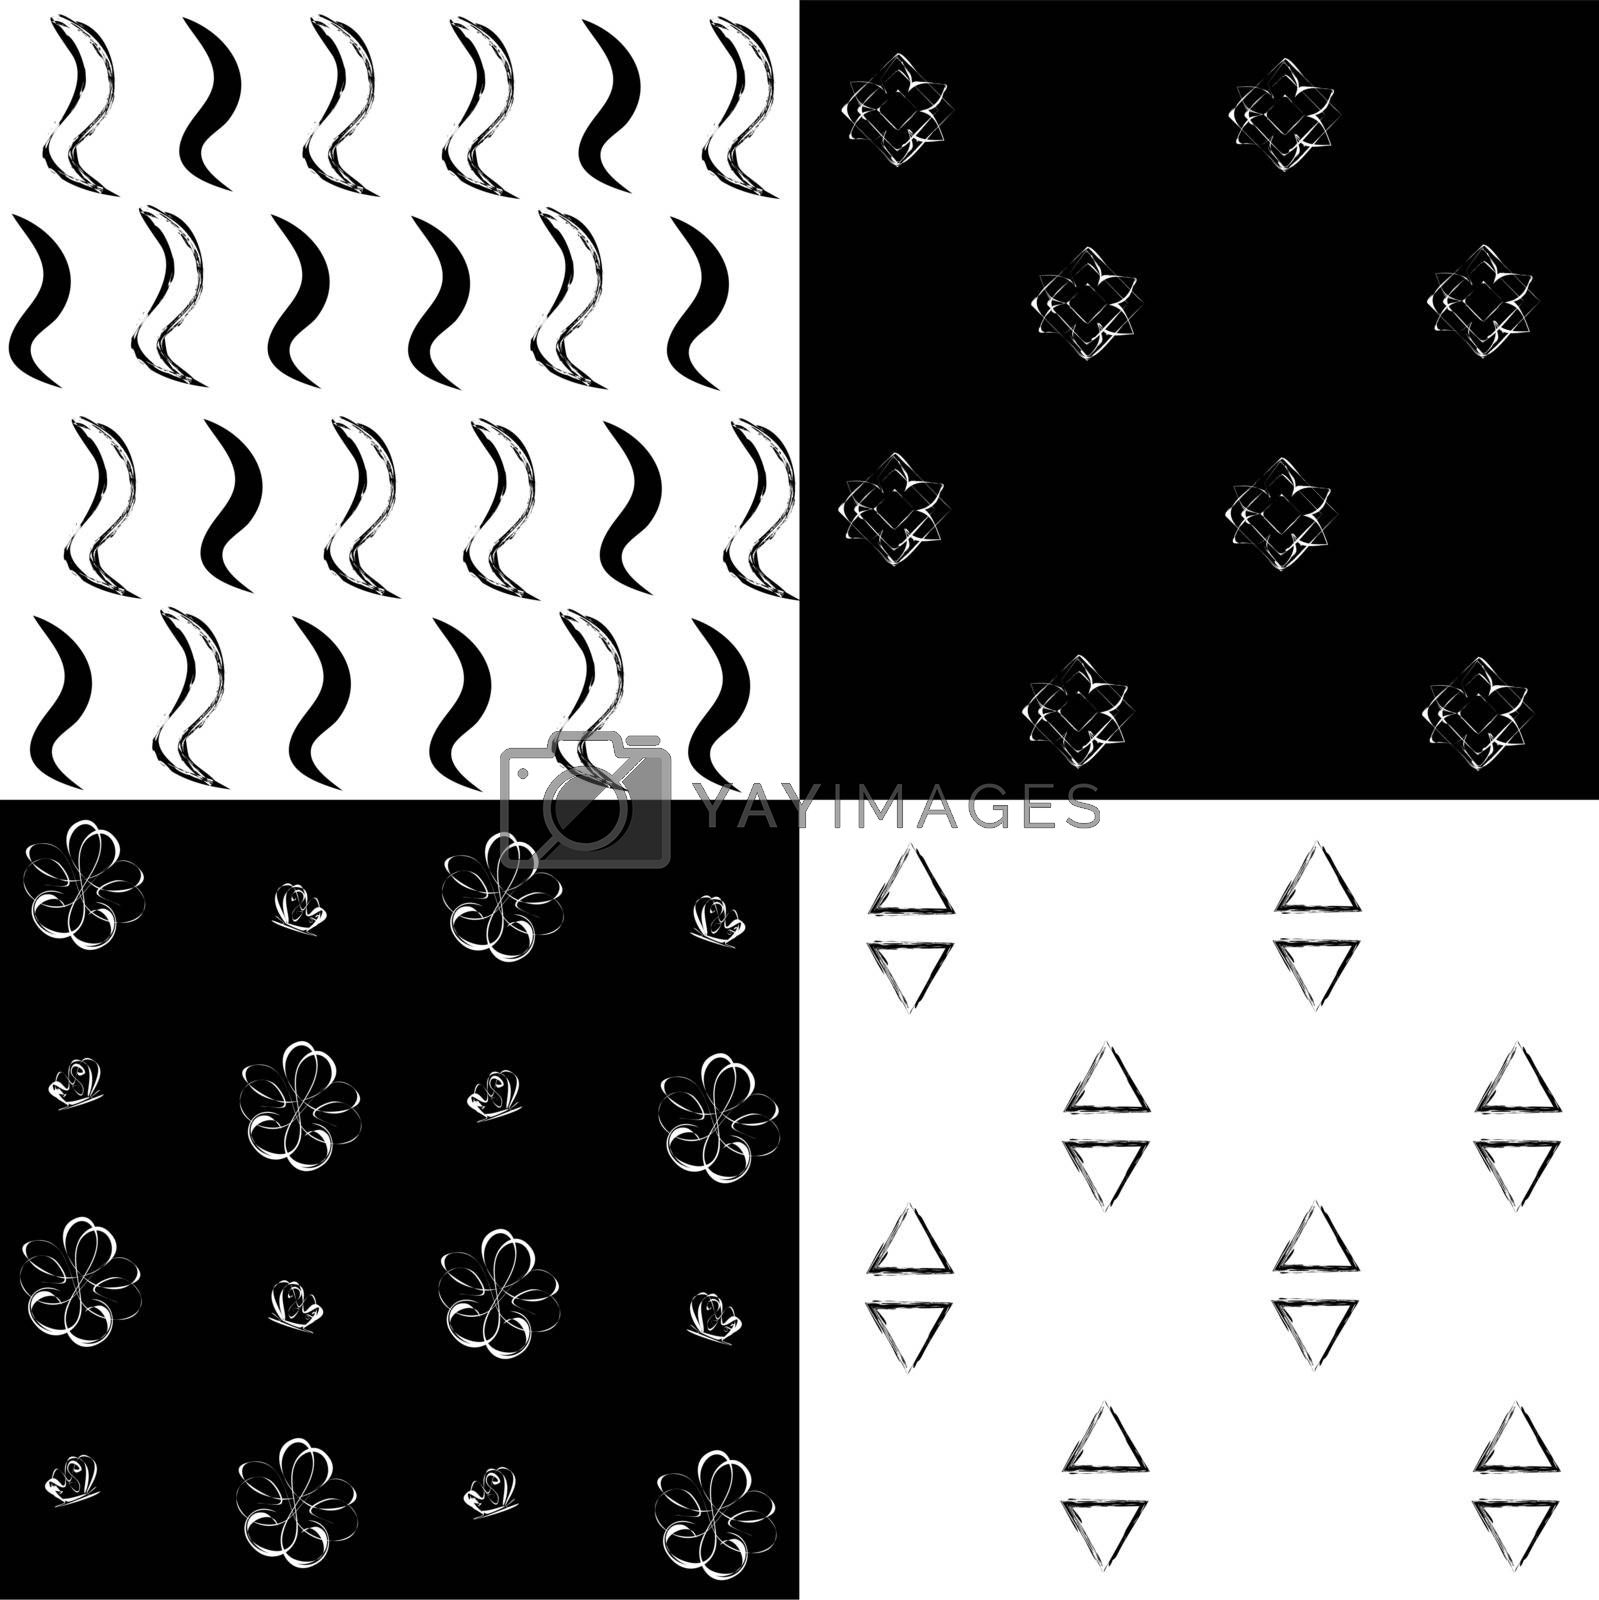 Four black and white simple patterns: waves, small flowers, triangles